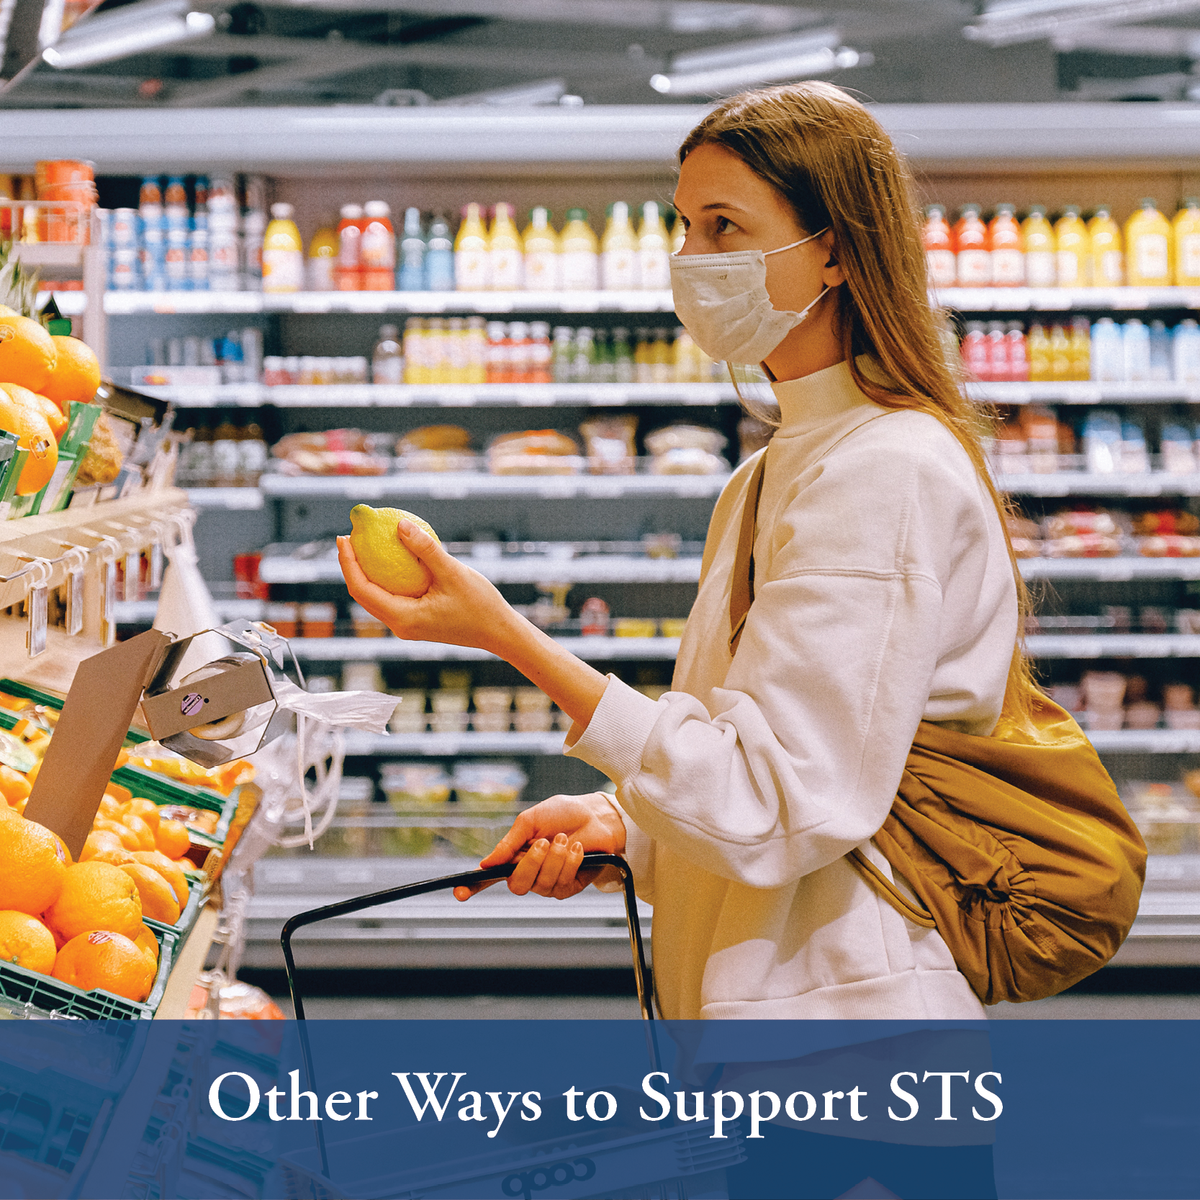 Other Ways to Support STS